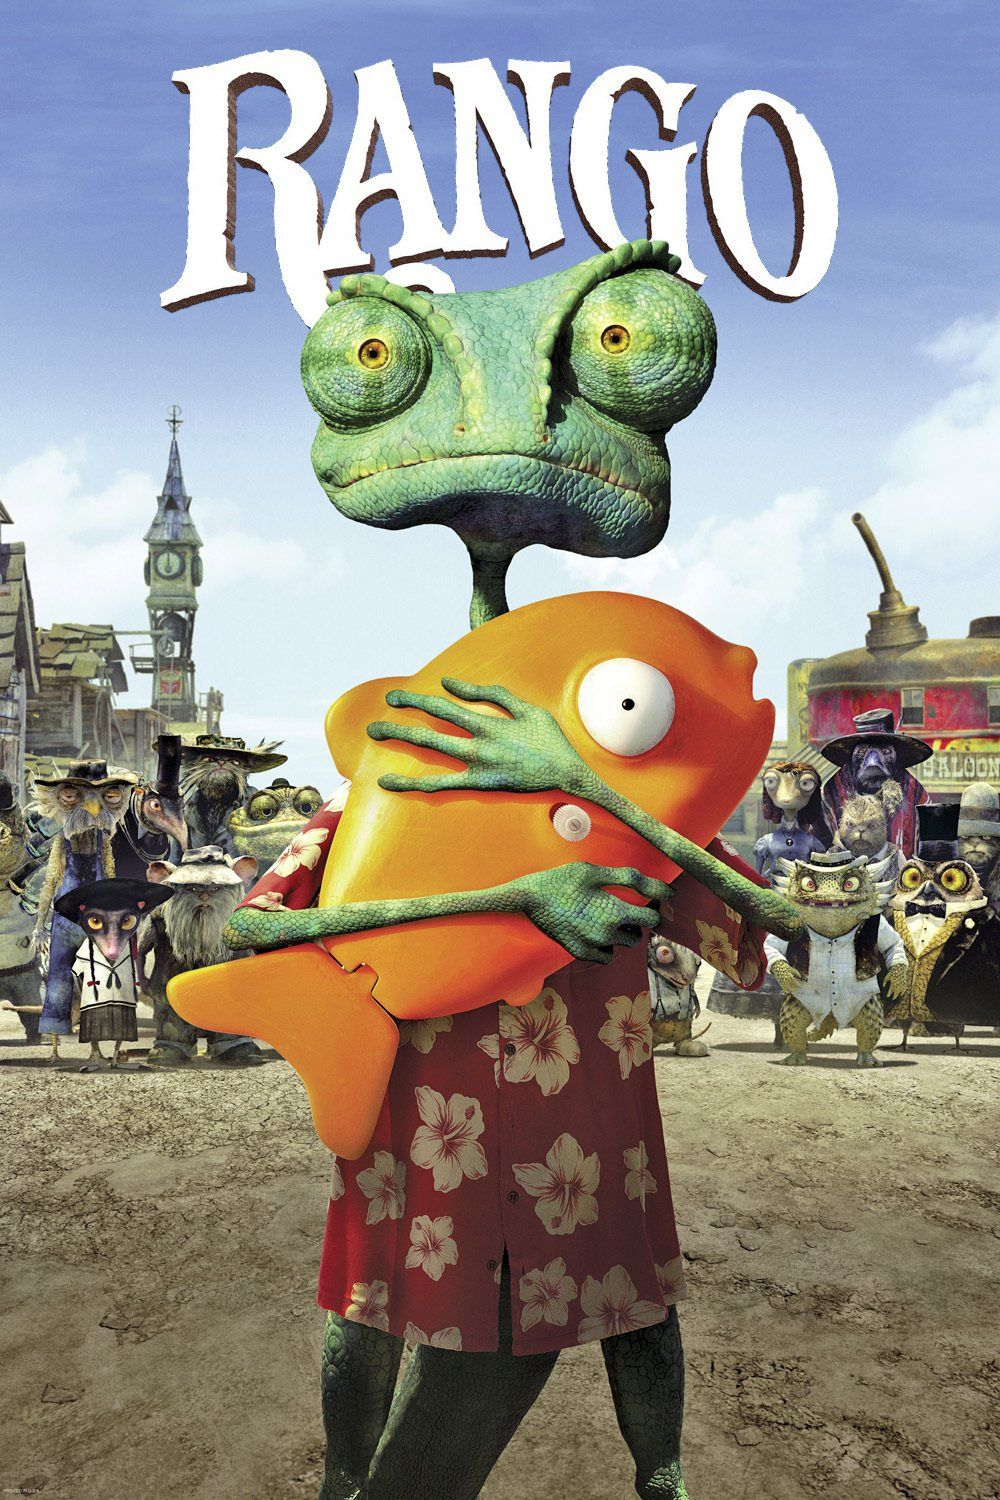 Watch Movie Online Rango Free Download Full Hd Quality